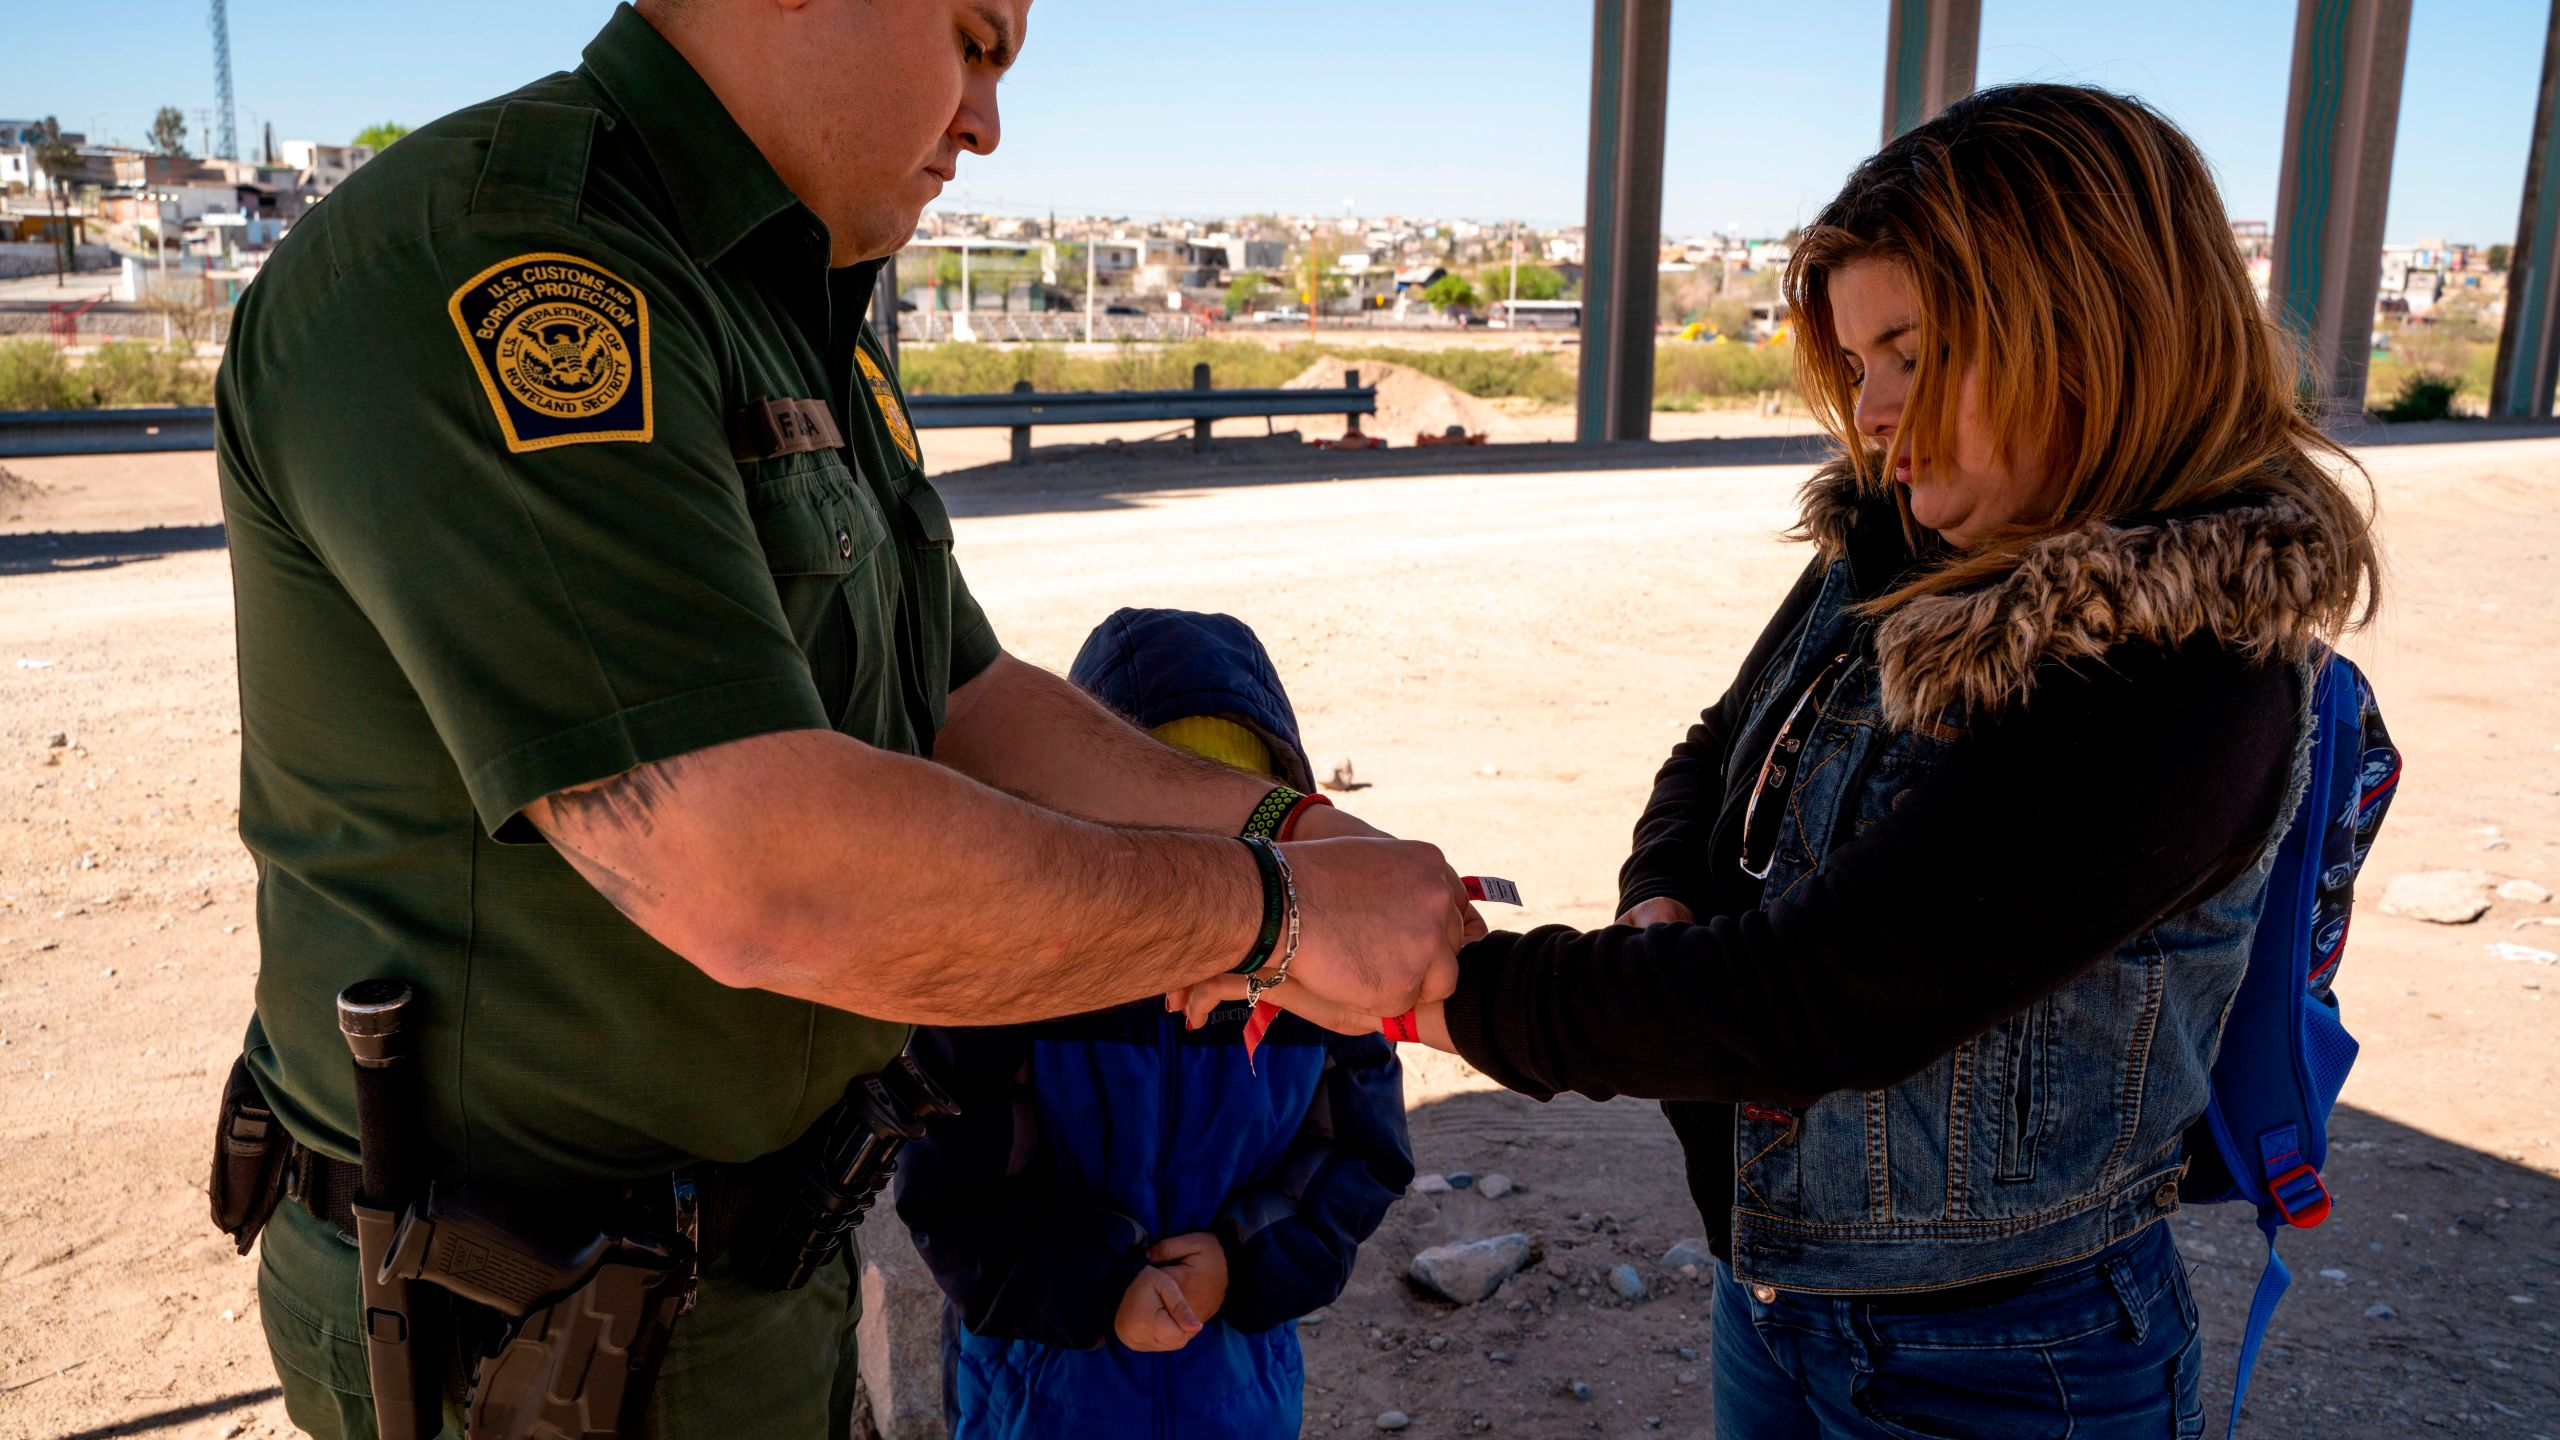 A mother and her son are given arm bands after turning themselves in to Border Patrol agents to claim asylum after crossing the Rio Grande in El Paso, Texas, on March 19, 2019. (Credit: Paul Ratje / AFP / Getty Images)